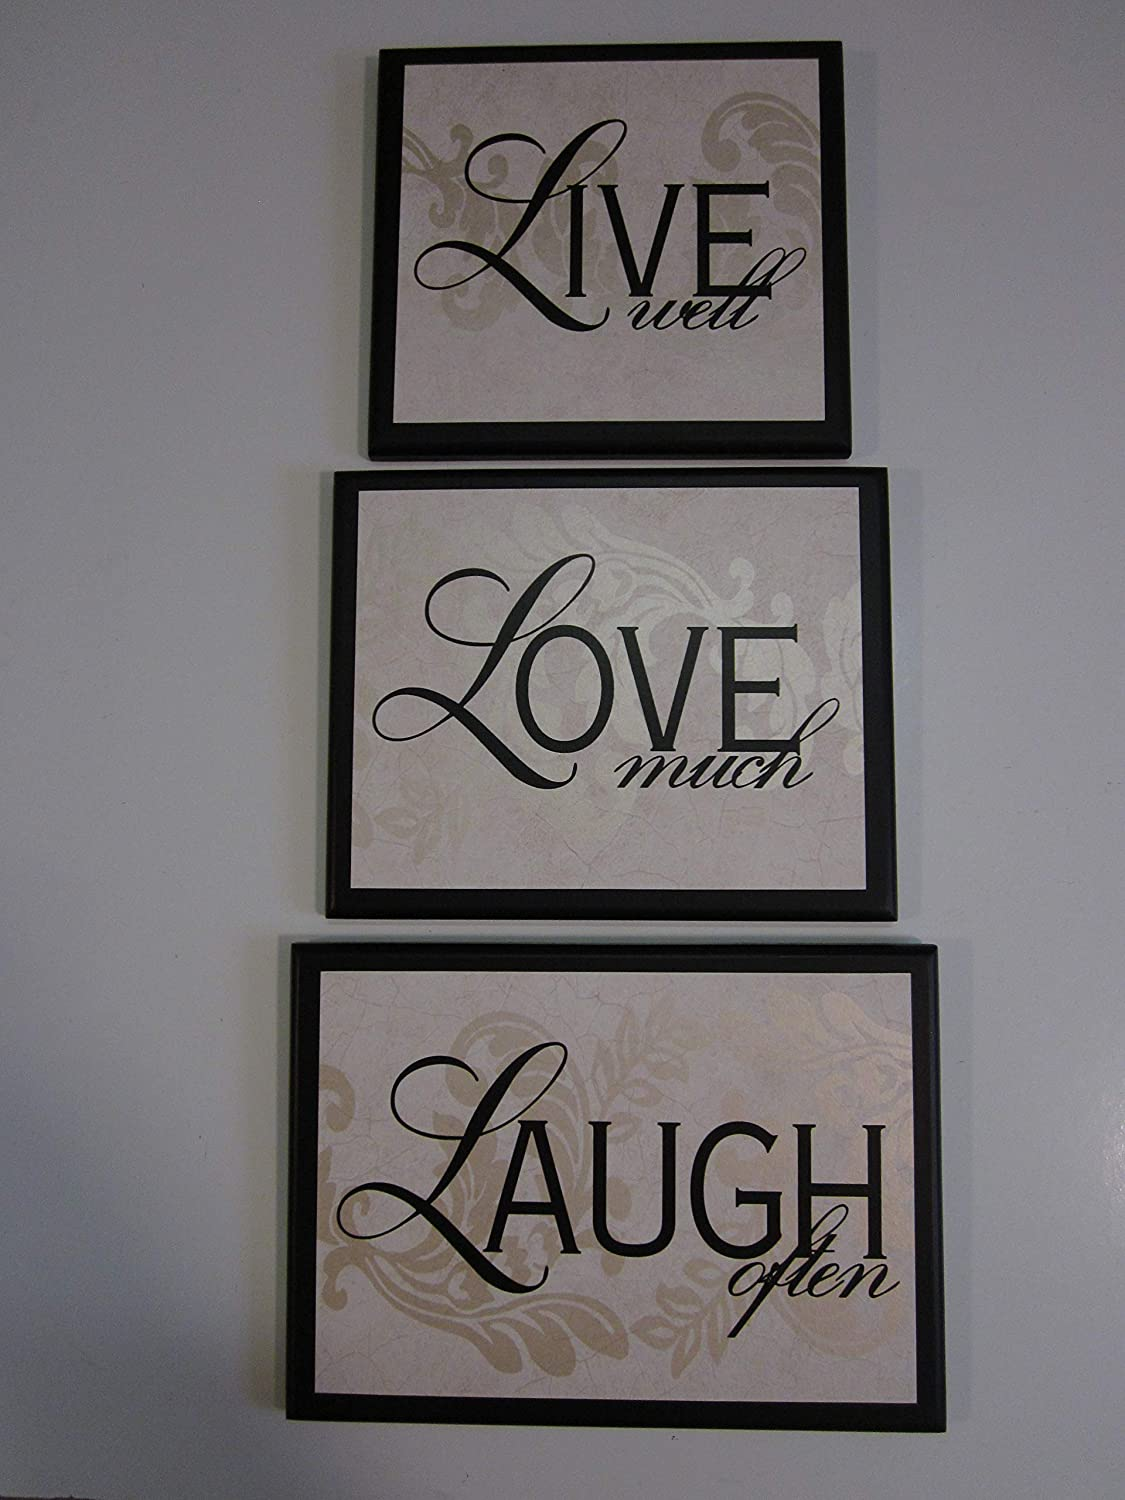 Amazon Com Live Well Laugh Often Love Much Wall Decor Plaques 3 Piece Set Quote Quotes Elegant Feminine Wood Wooden Plaque Sign Picture Wall Decor Hanging Unique Unusual Gift Handcrafted Handmade